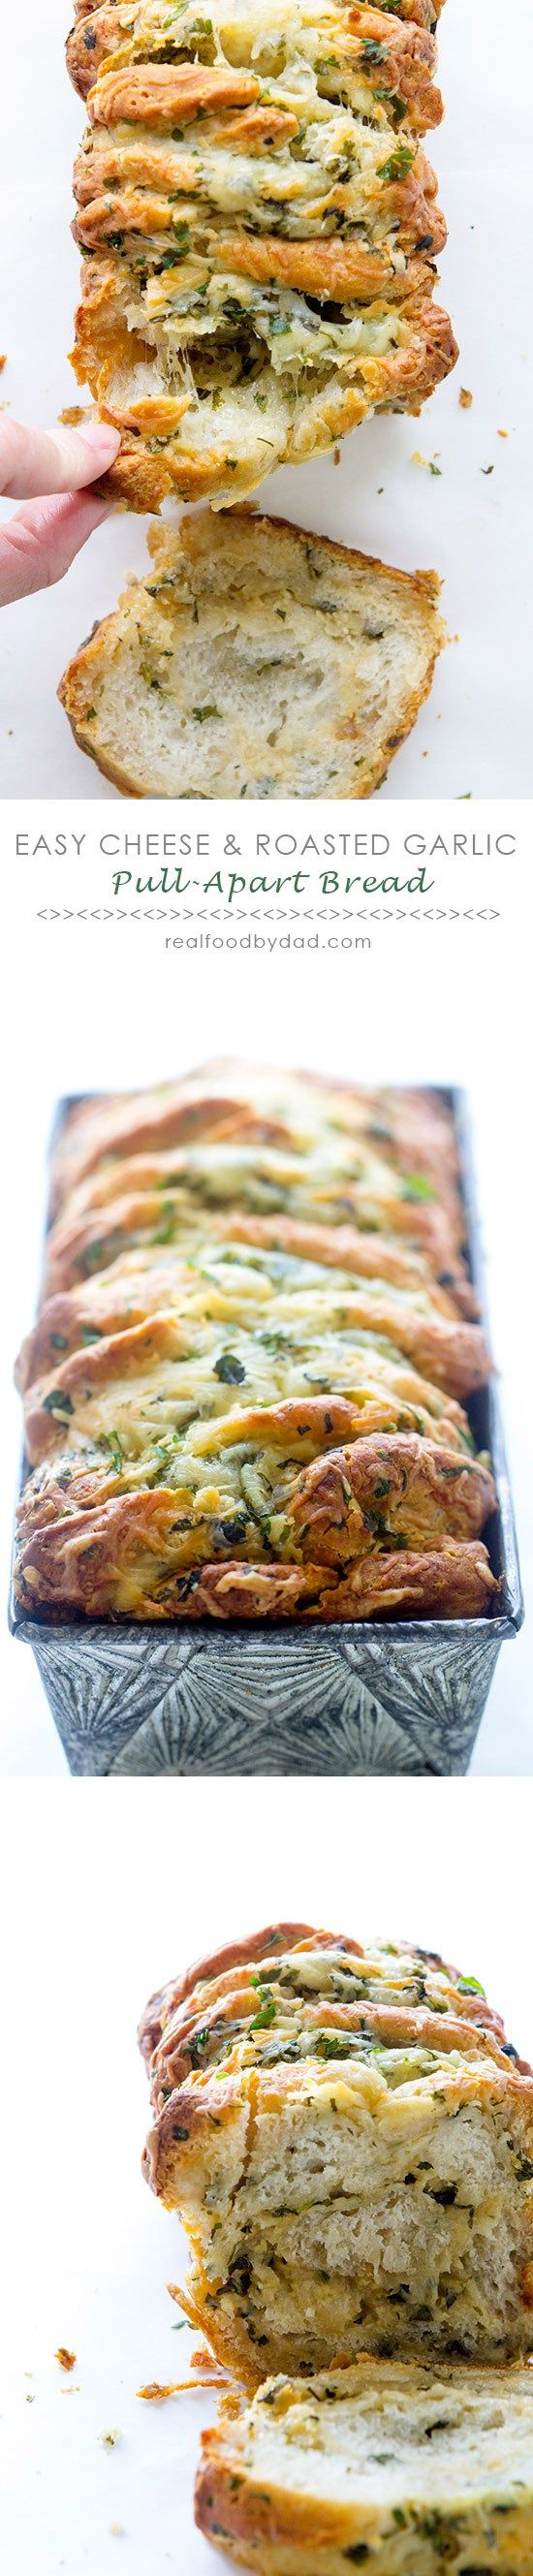 Easy Cheese and Garlic Pull-Apart Bread